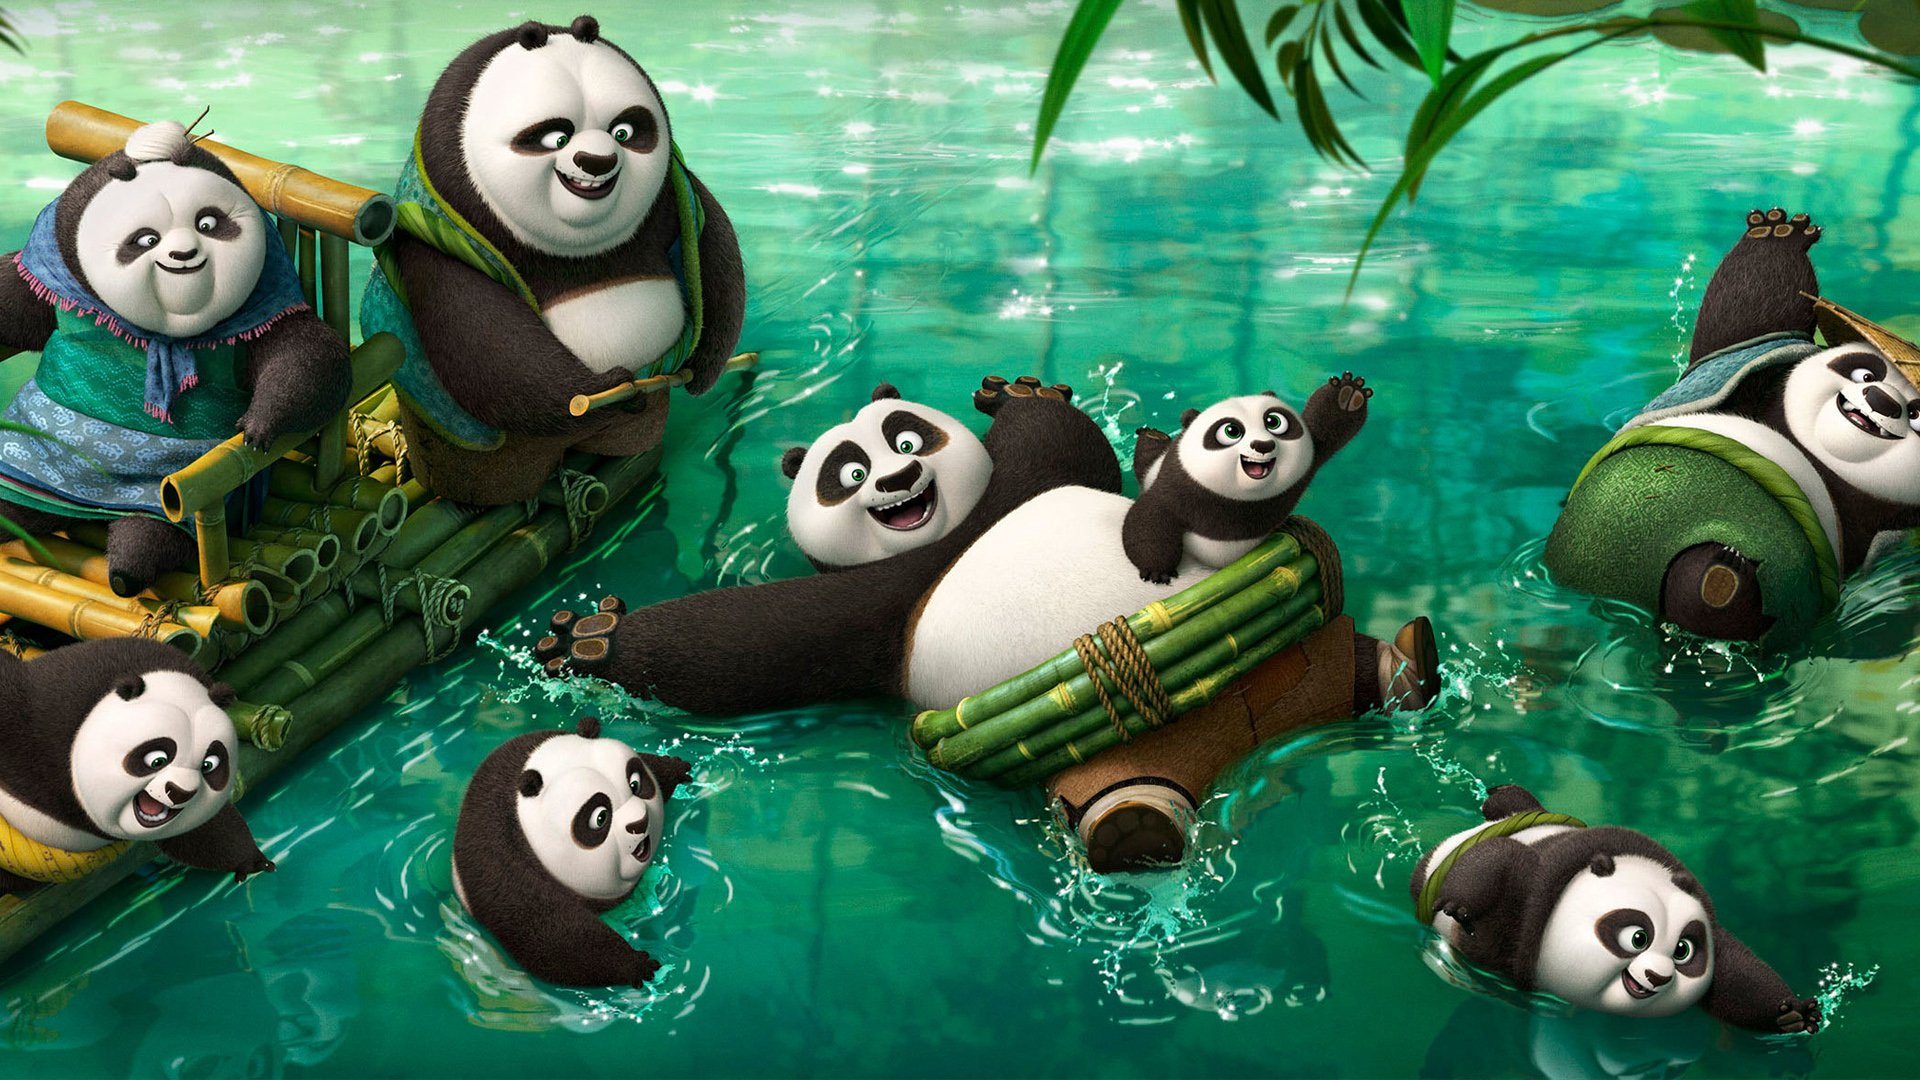 102 kung fu panda hd wallpapers | background images - wallpaper abyss